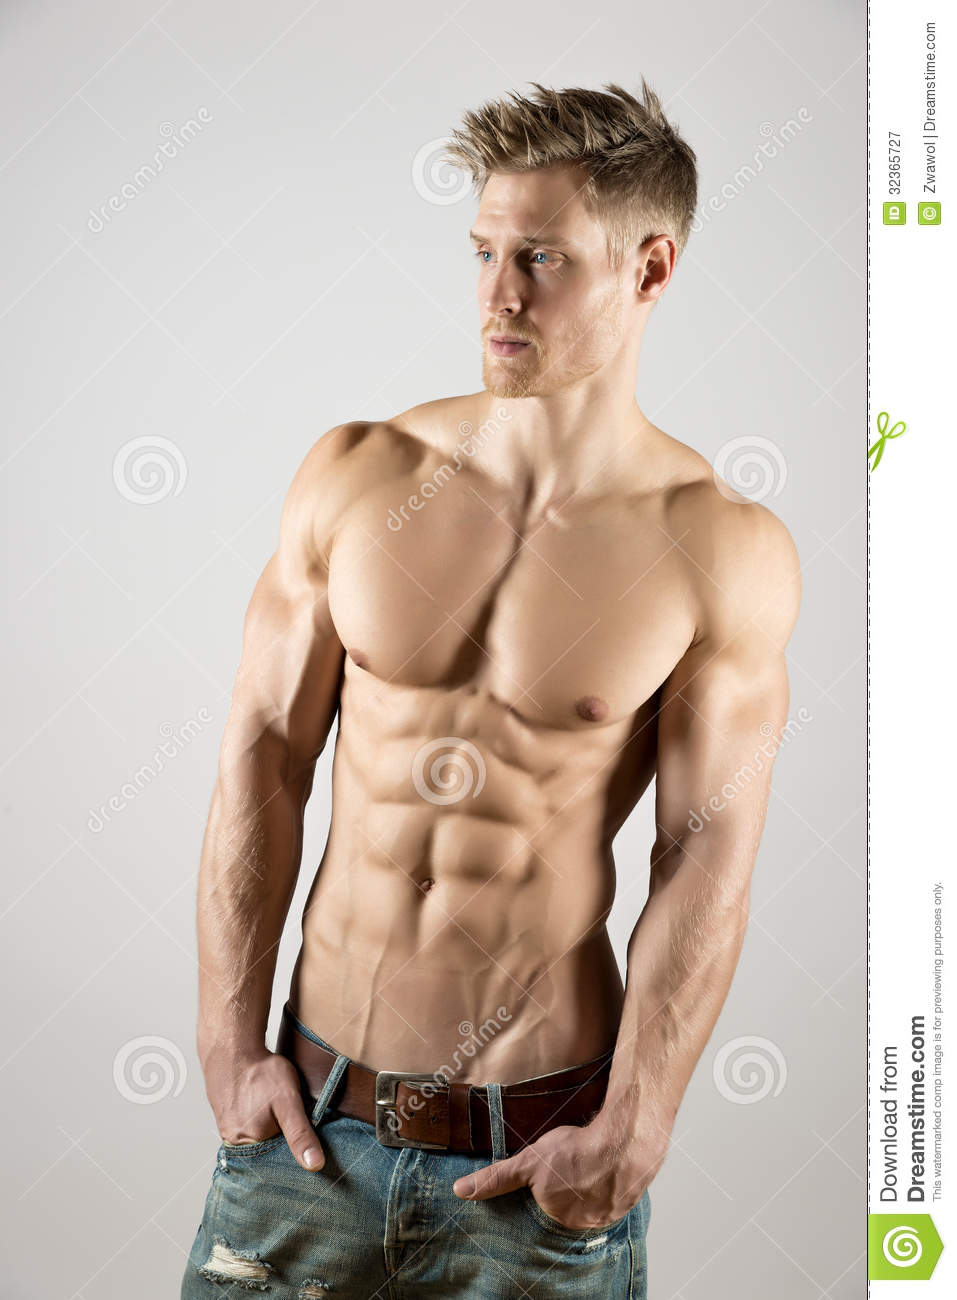 young body art athlete royalty free stock photography - image, Muscles